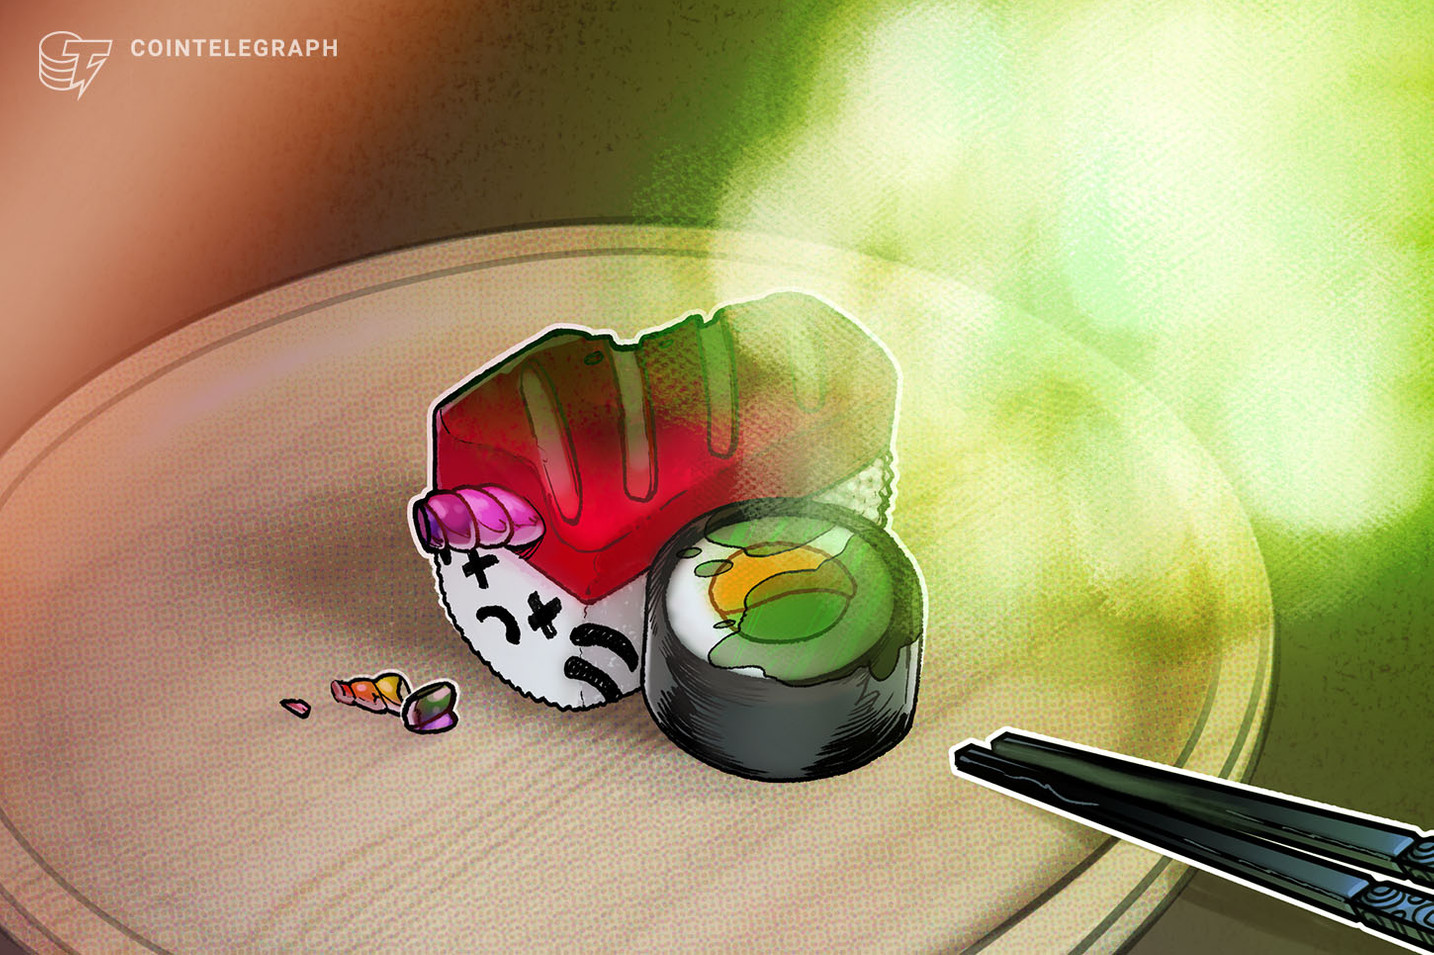 To list or not to list, Part 1: Binance should not have listed SUSHI